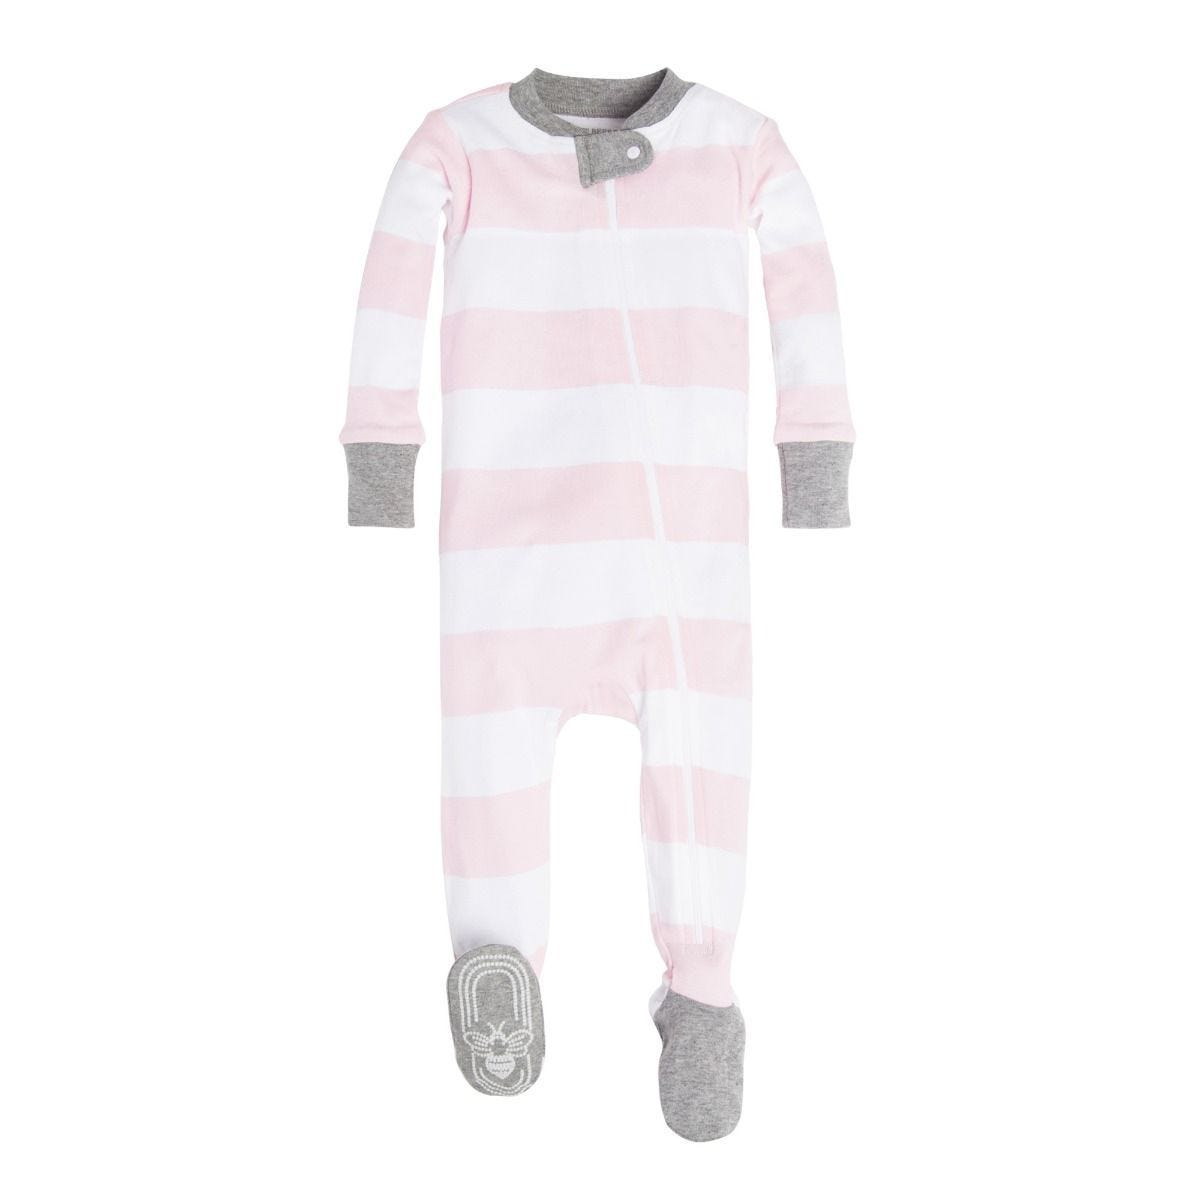 00f7e51af65f Rugby Stripe Organic Baby Zip Up Footed Pajamas